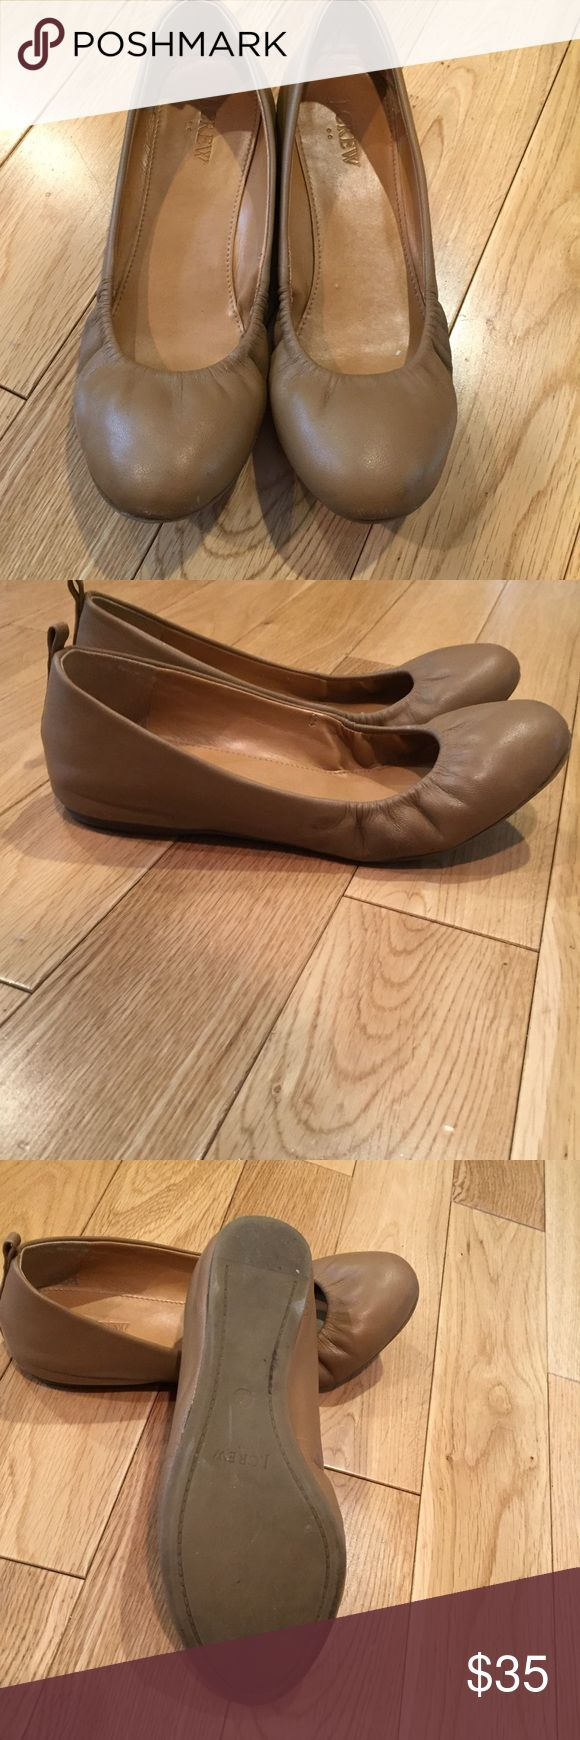 J. Crew Factory Anya Leather Ballet Flats Color: Camel. Have been worn about 4 times. J. Crew Factory Shoes Flats & Loafers